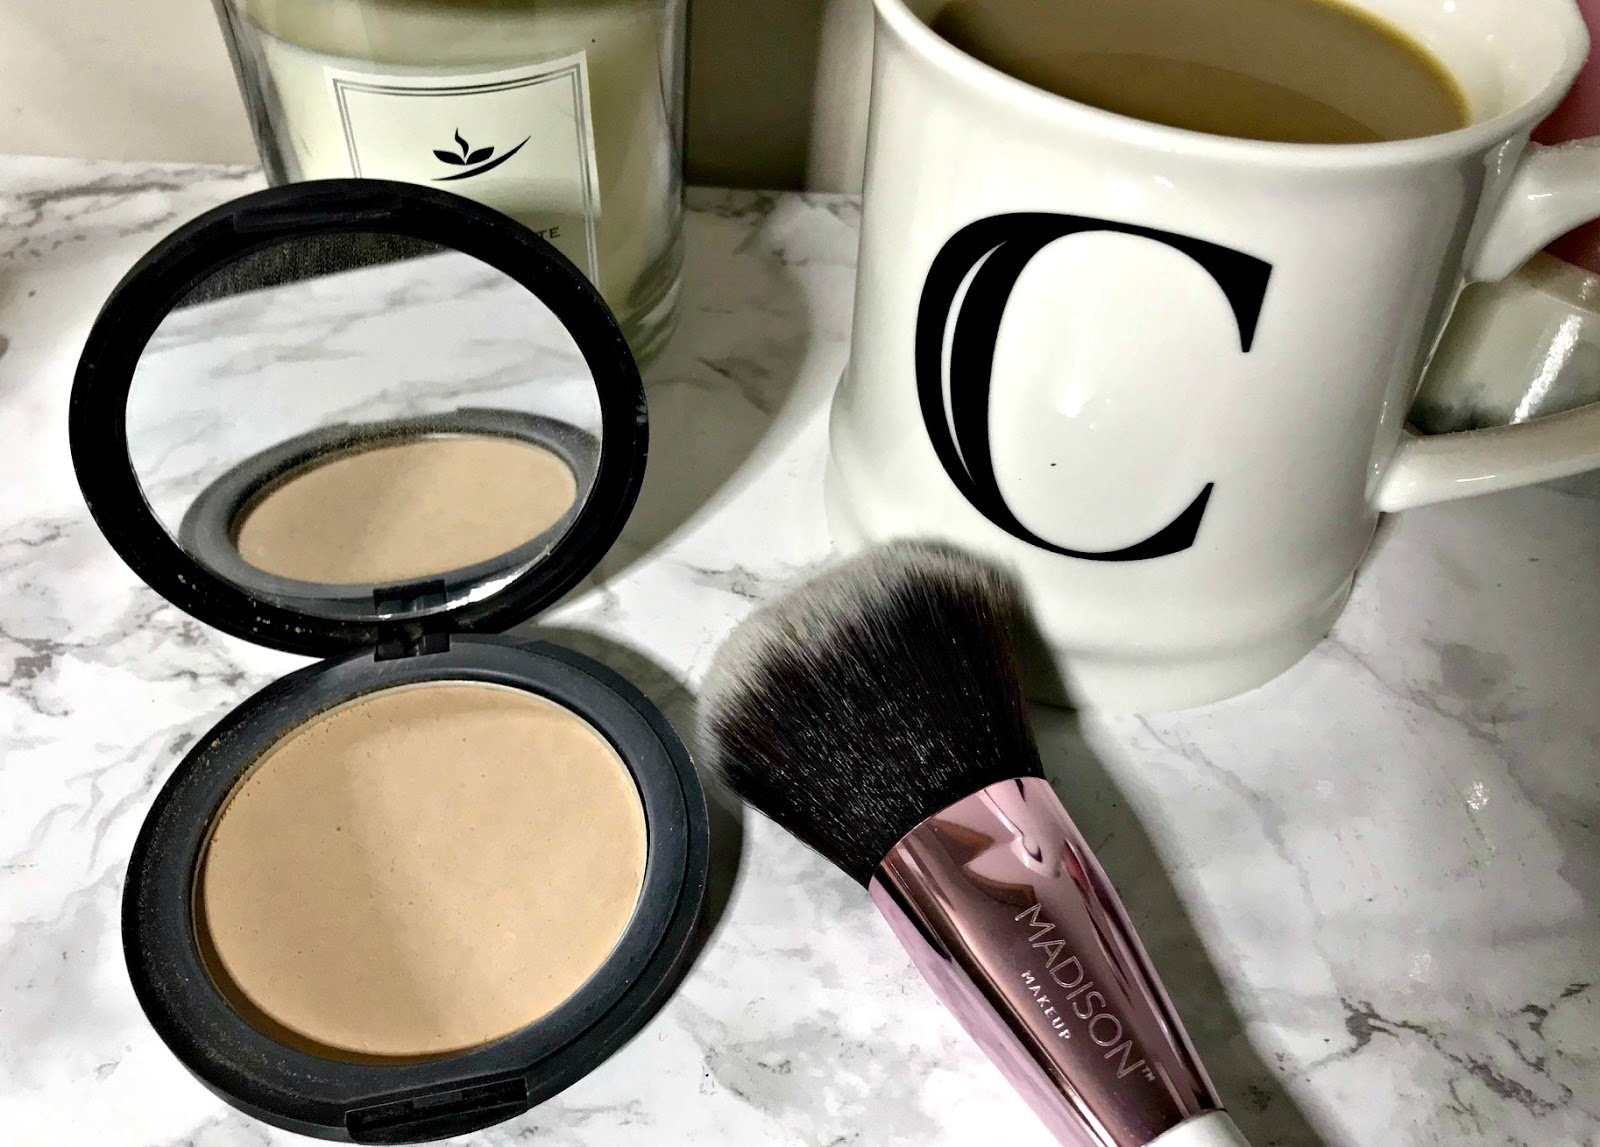 Mum of 2 Everyday Makeup Routine